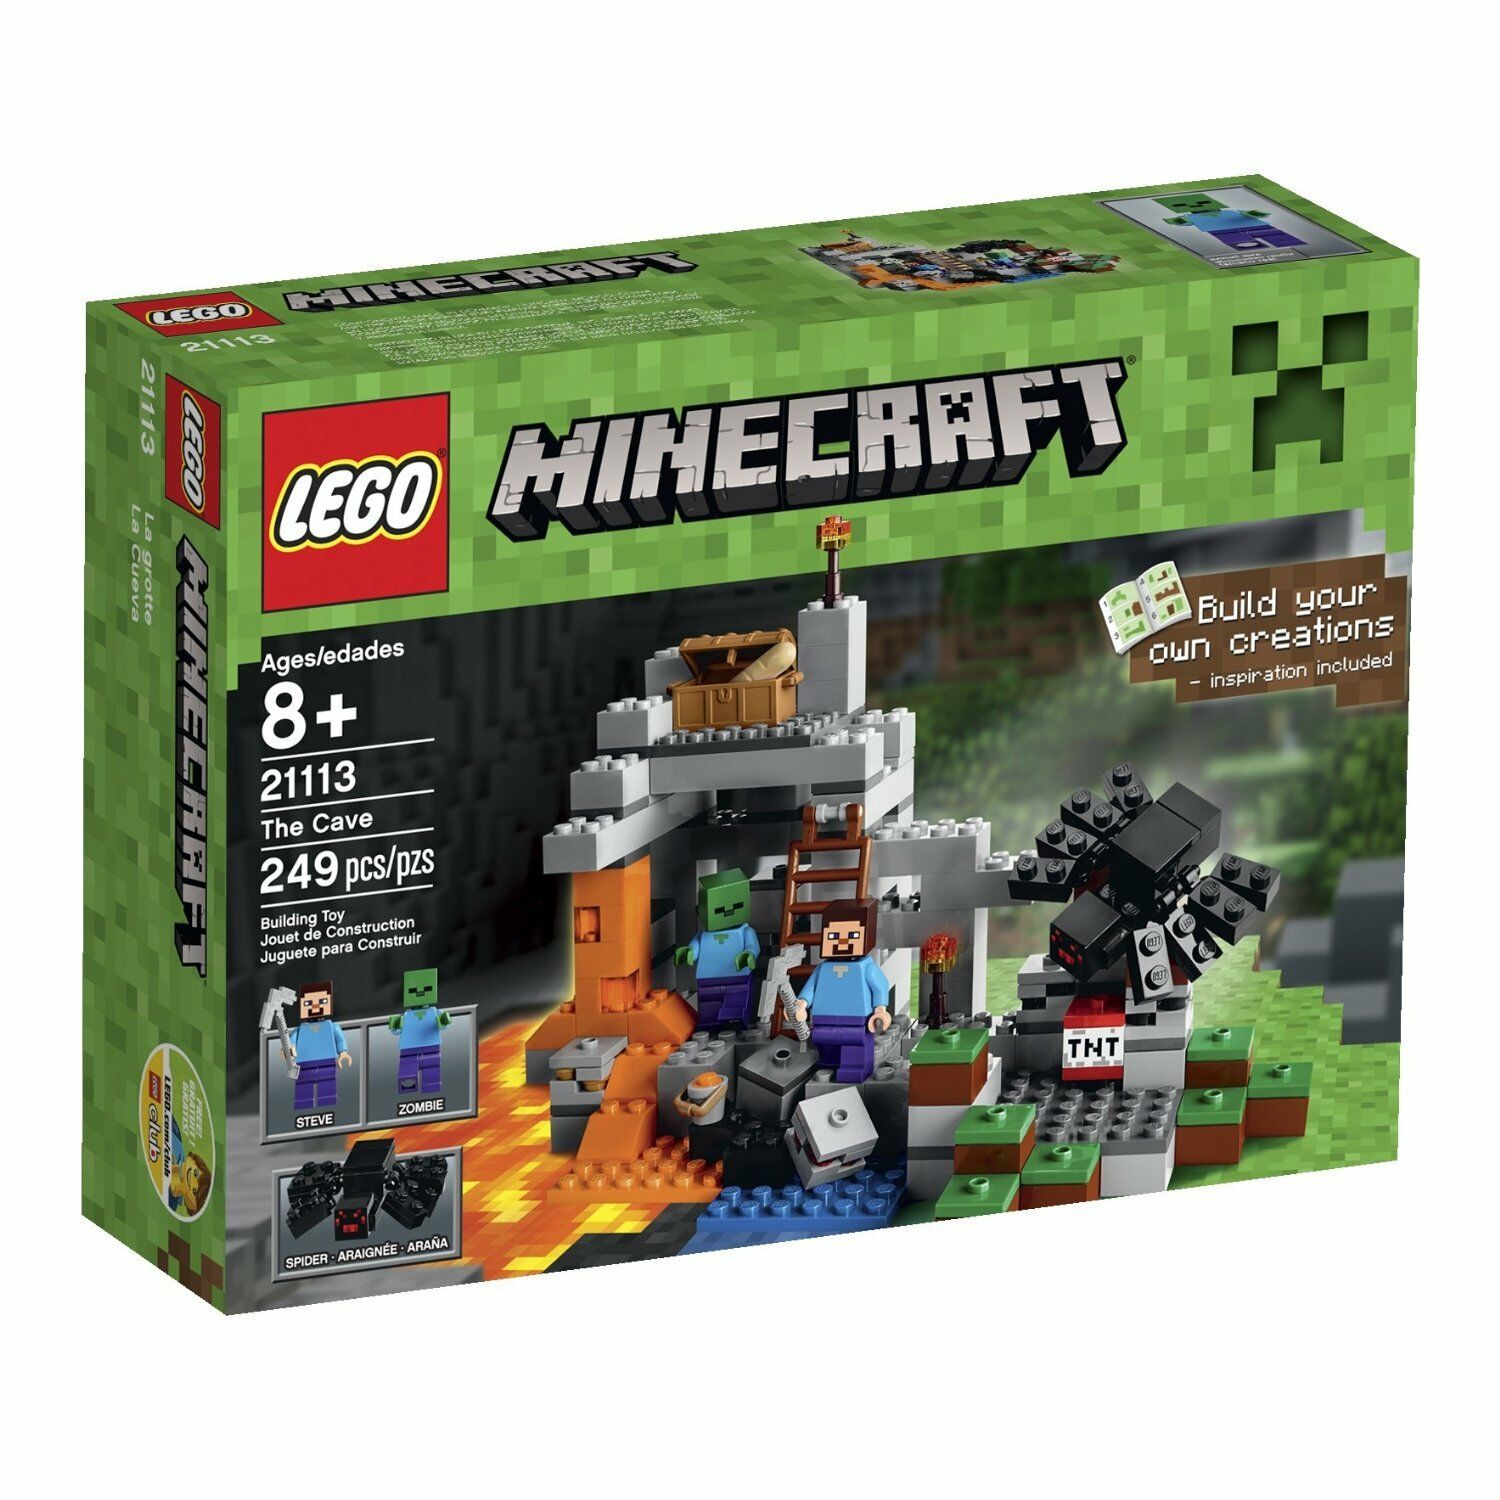 Nuovo LEGO Minecraft The Cave 21113 Playset, 2 Minifigures Steve Zombie Spider Toy